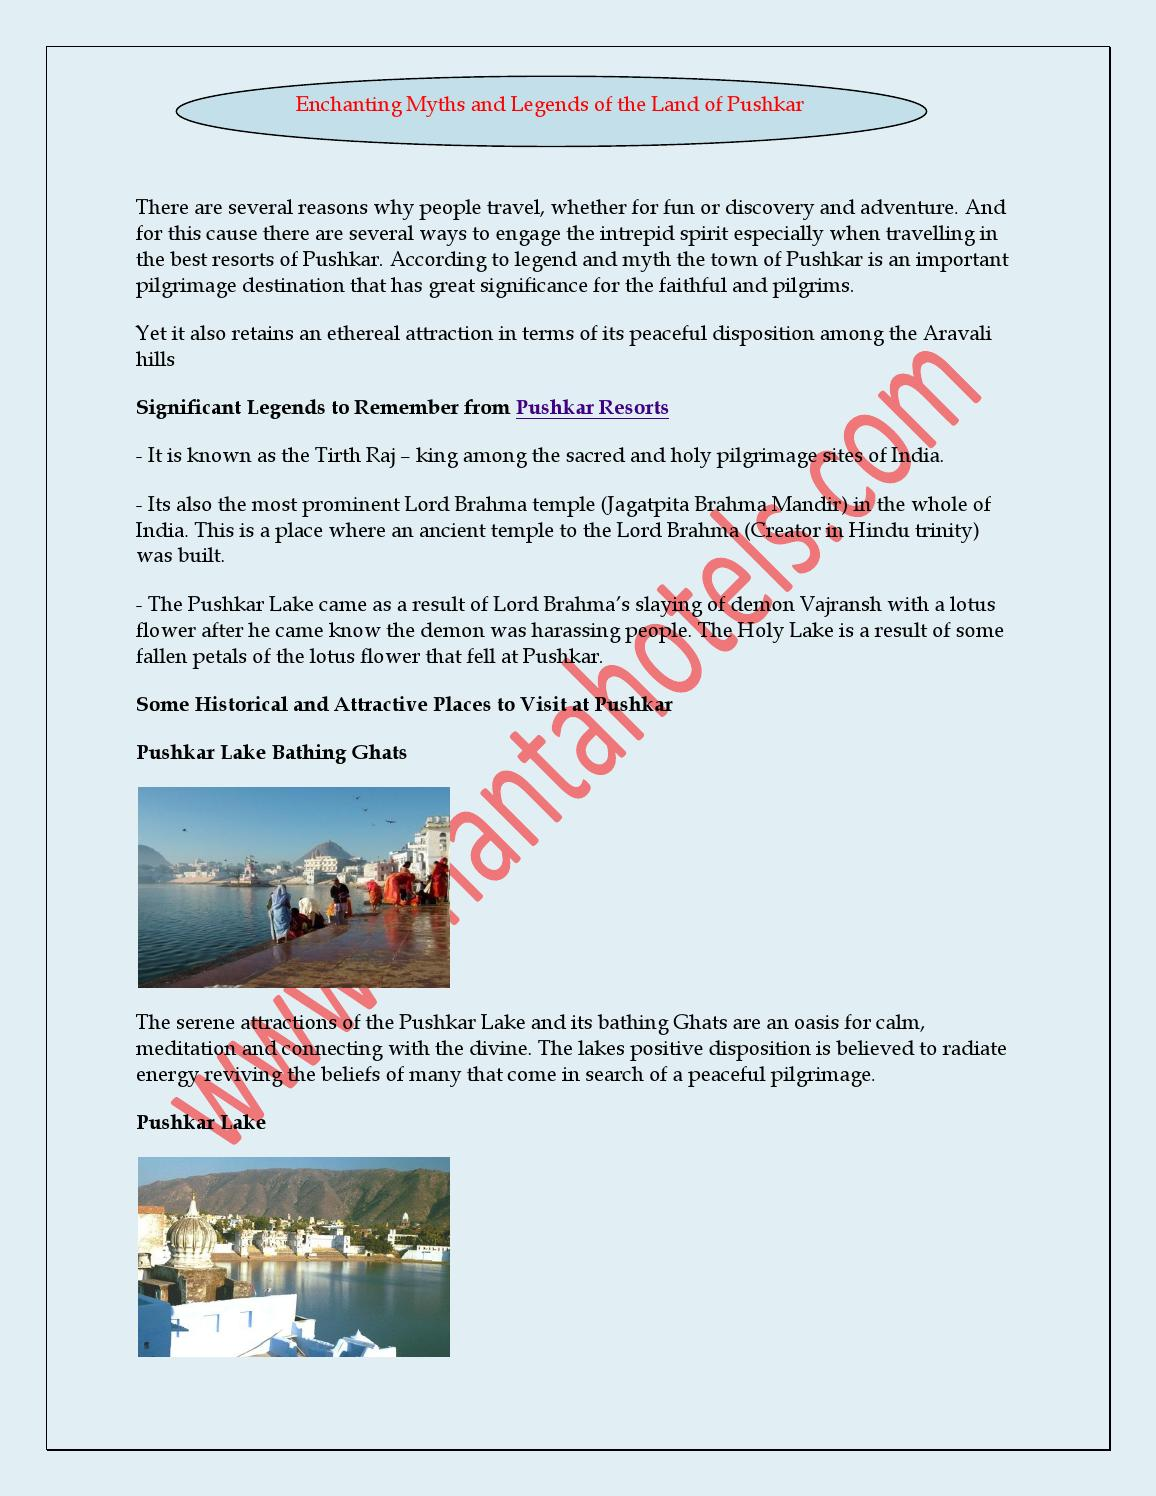 Enchanting myths and legends of the land of pushkar by vertexplus enchanting myths and legends of the land of pushkar by vertexplus technologies issuu izmirmasajfo